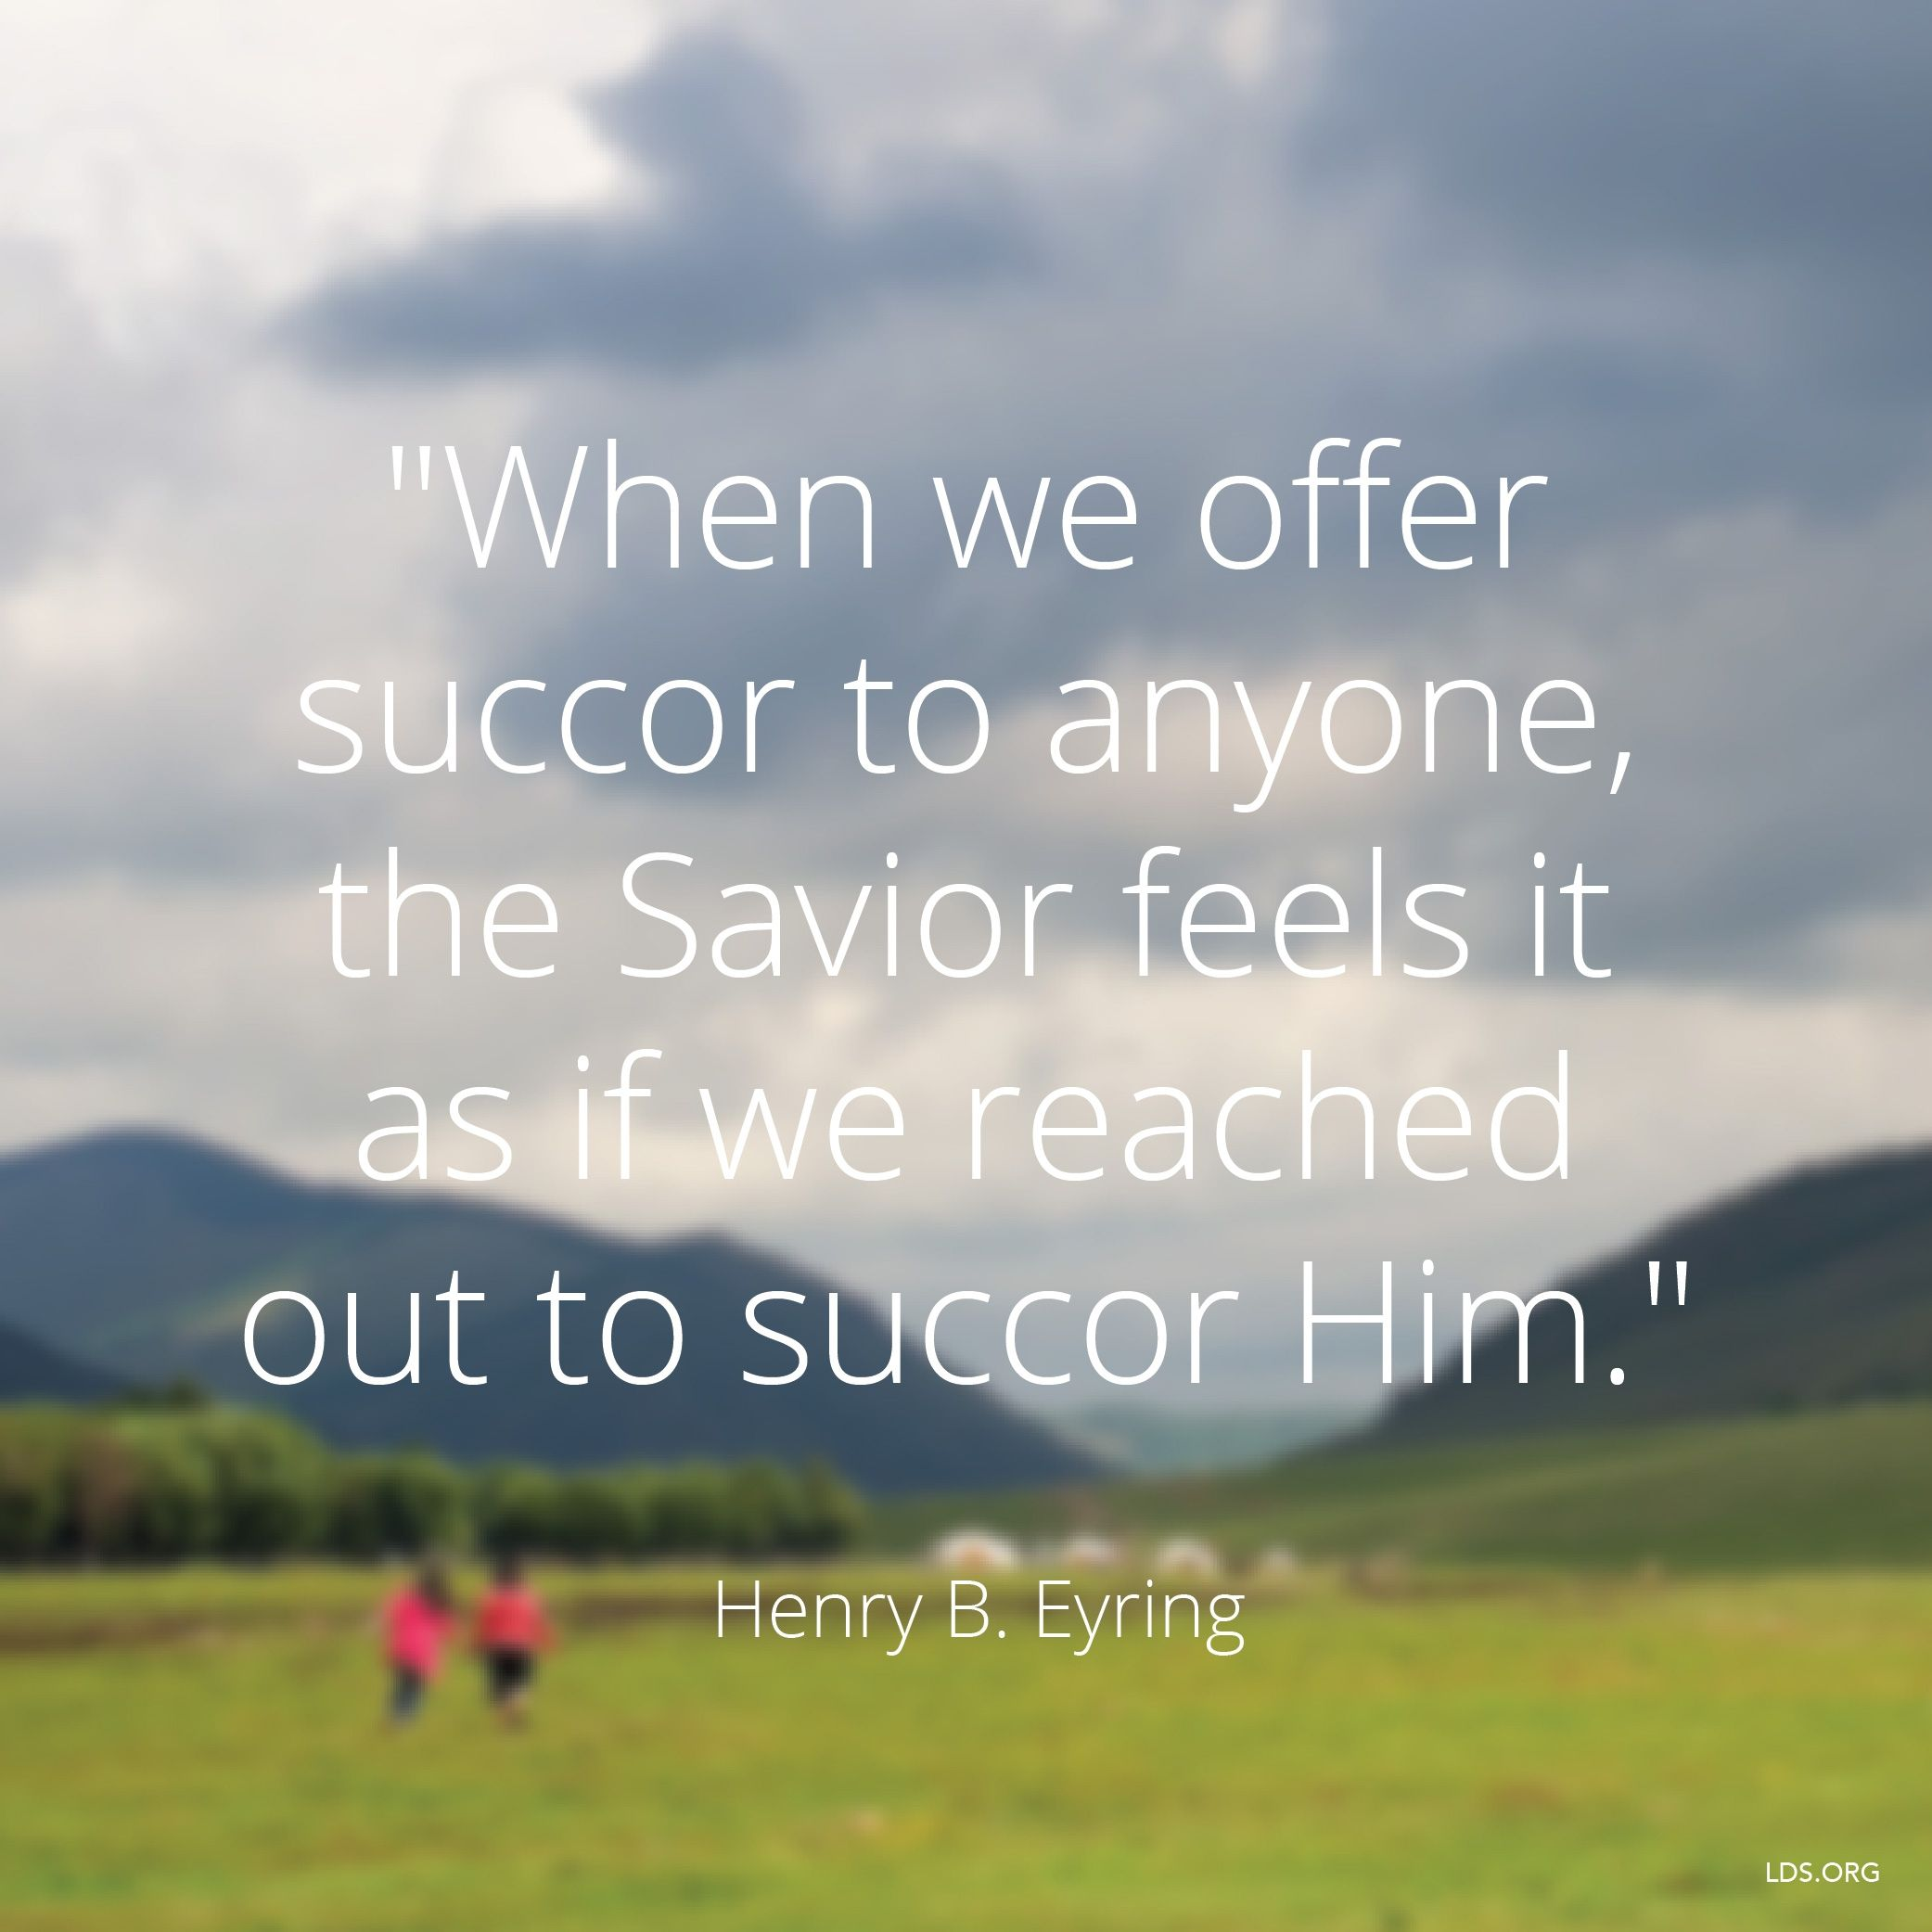 """""""When we offer succor to anyone, the Savior feels it as if we reached out to succor Him.""""—President Henry B. Eyring, """"'Is Not This the Fast That I Have Chosen?'"""""""